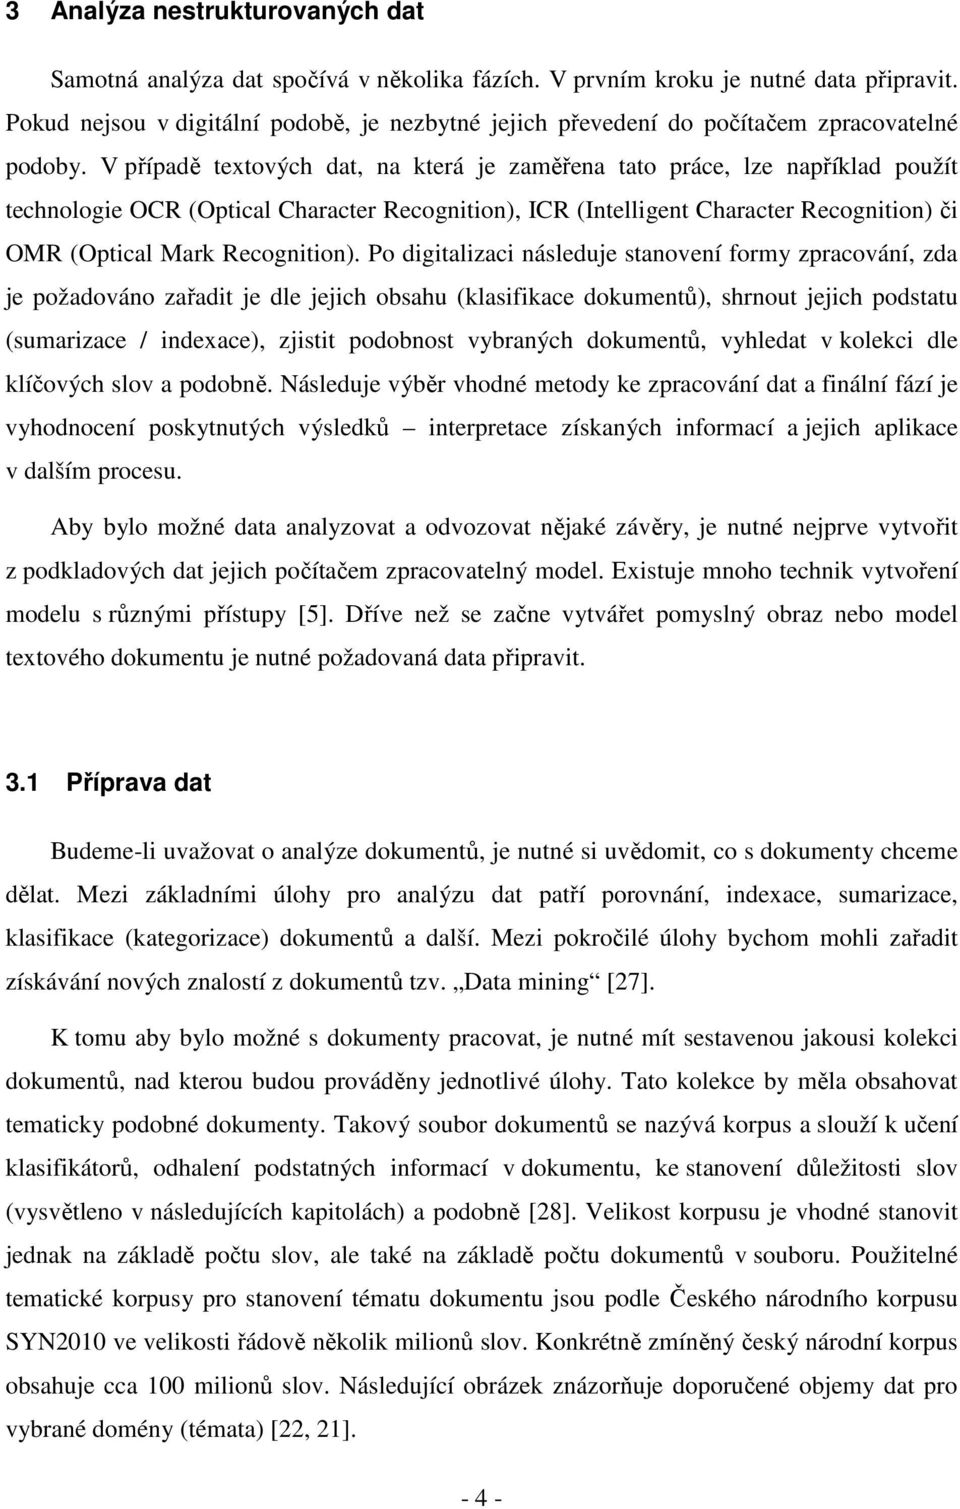 V případě textových dat, na která je zaměřena tato práce, lze například použít technologie OCR (Optical Character Recognition), ICR (Intelligent Character Recognition) či OMR (Optical Mark